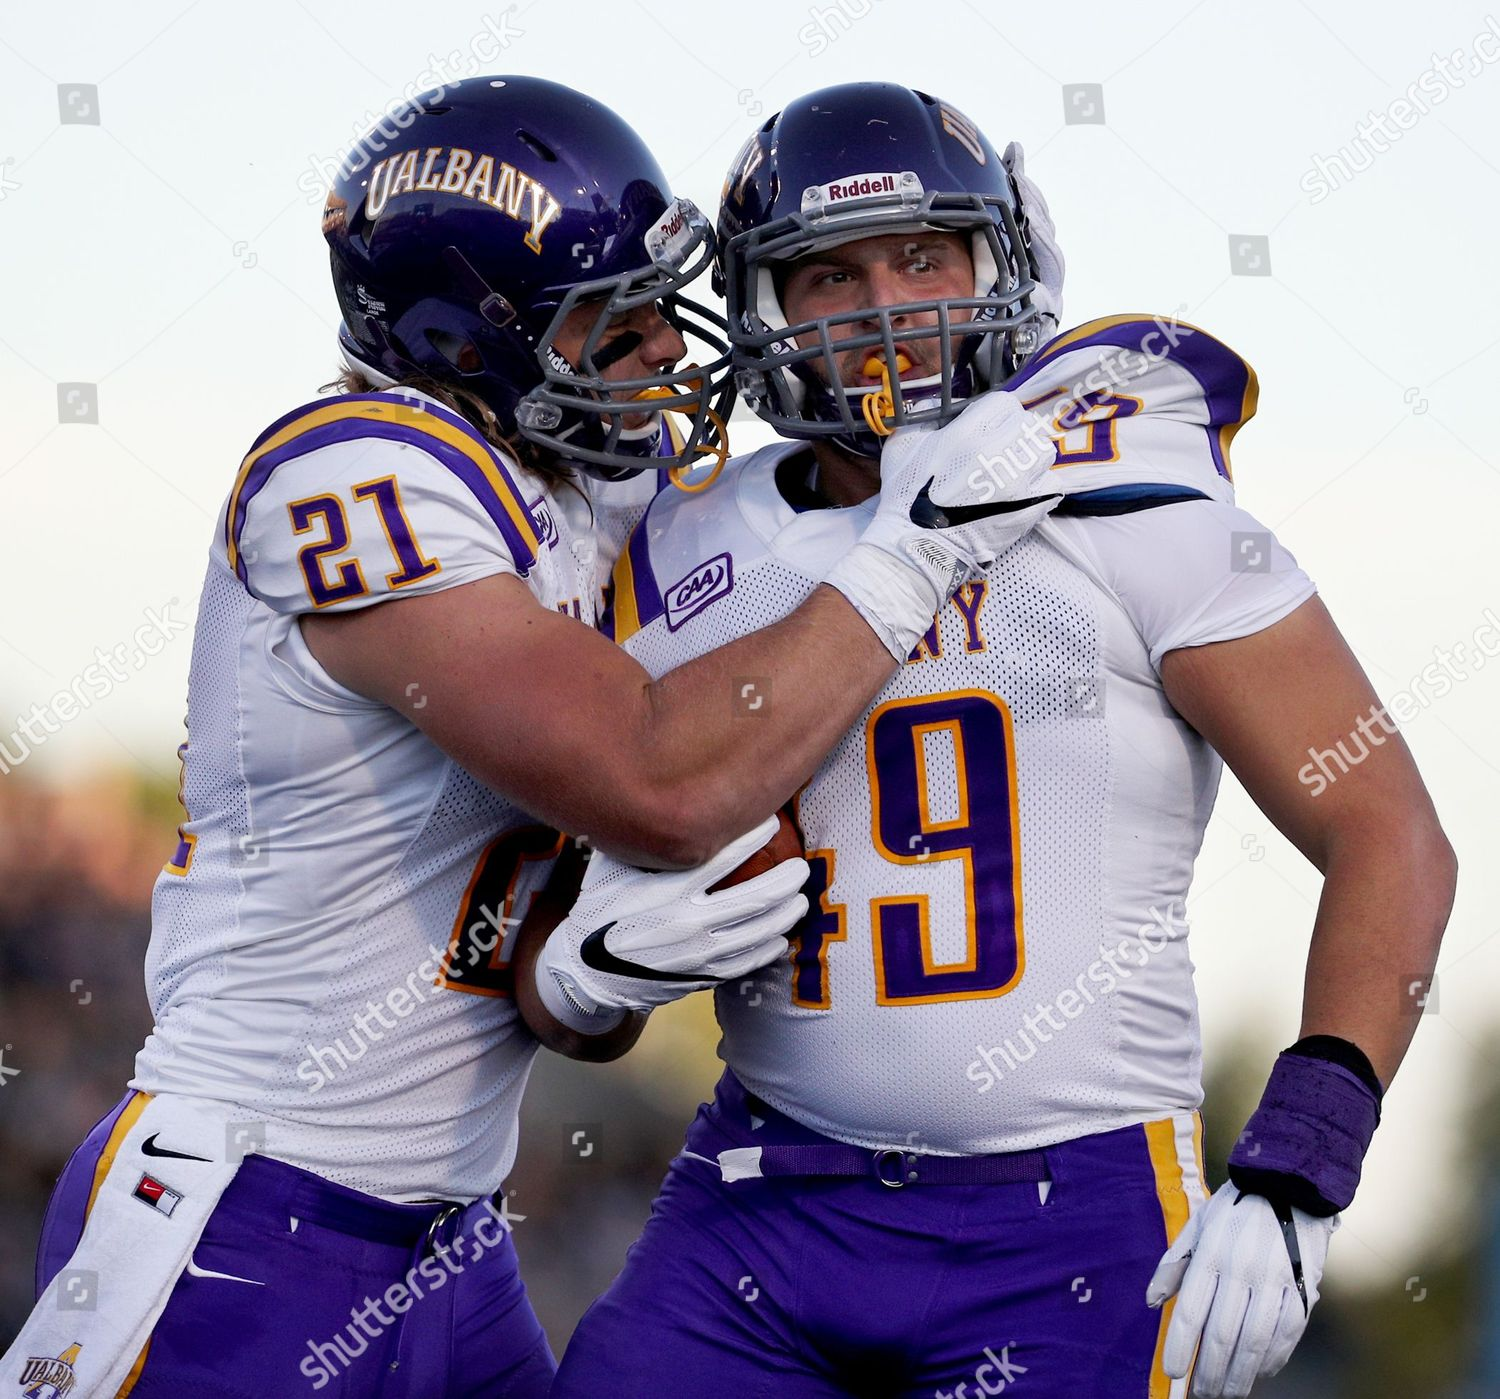 separation shoes 2e1a7 e1b79 Albany Great Danes tight end Nic Ketter Editorial Stock ...